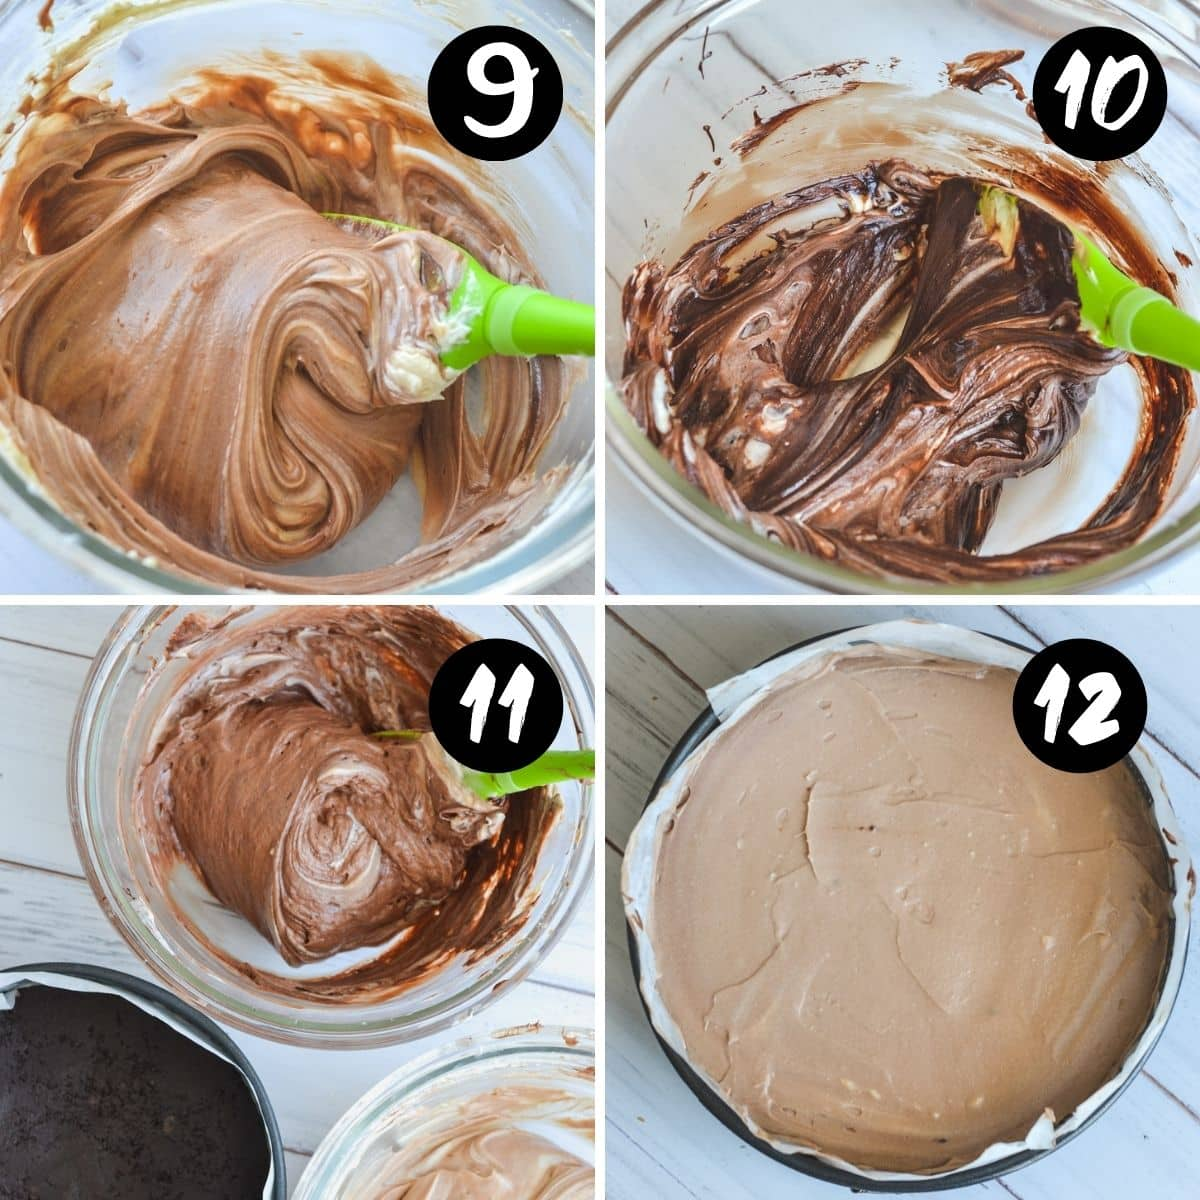 steps showing a spatula folding melted chocolate into cream cheese filling in a glass bowl.